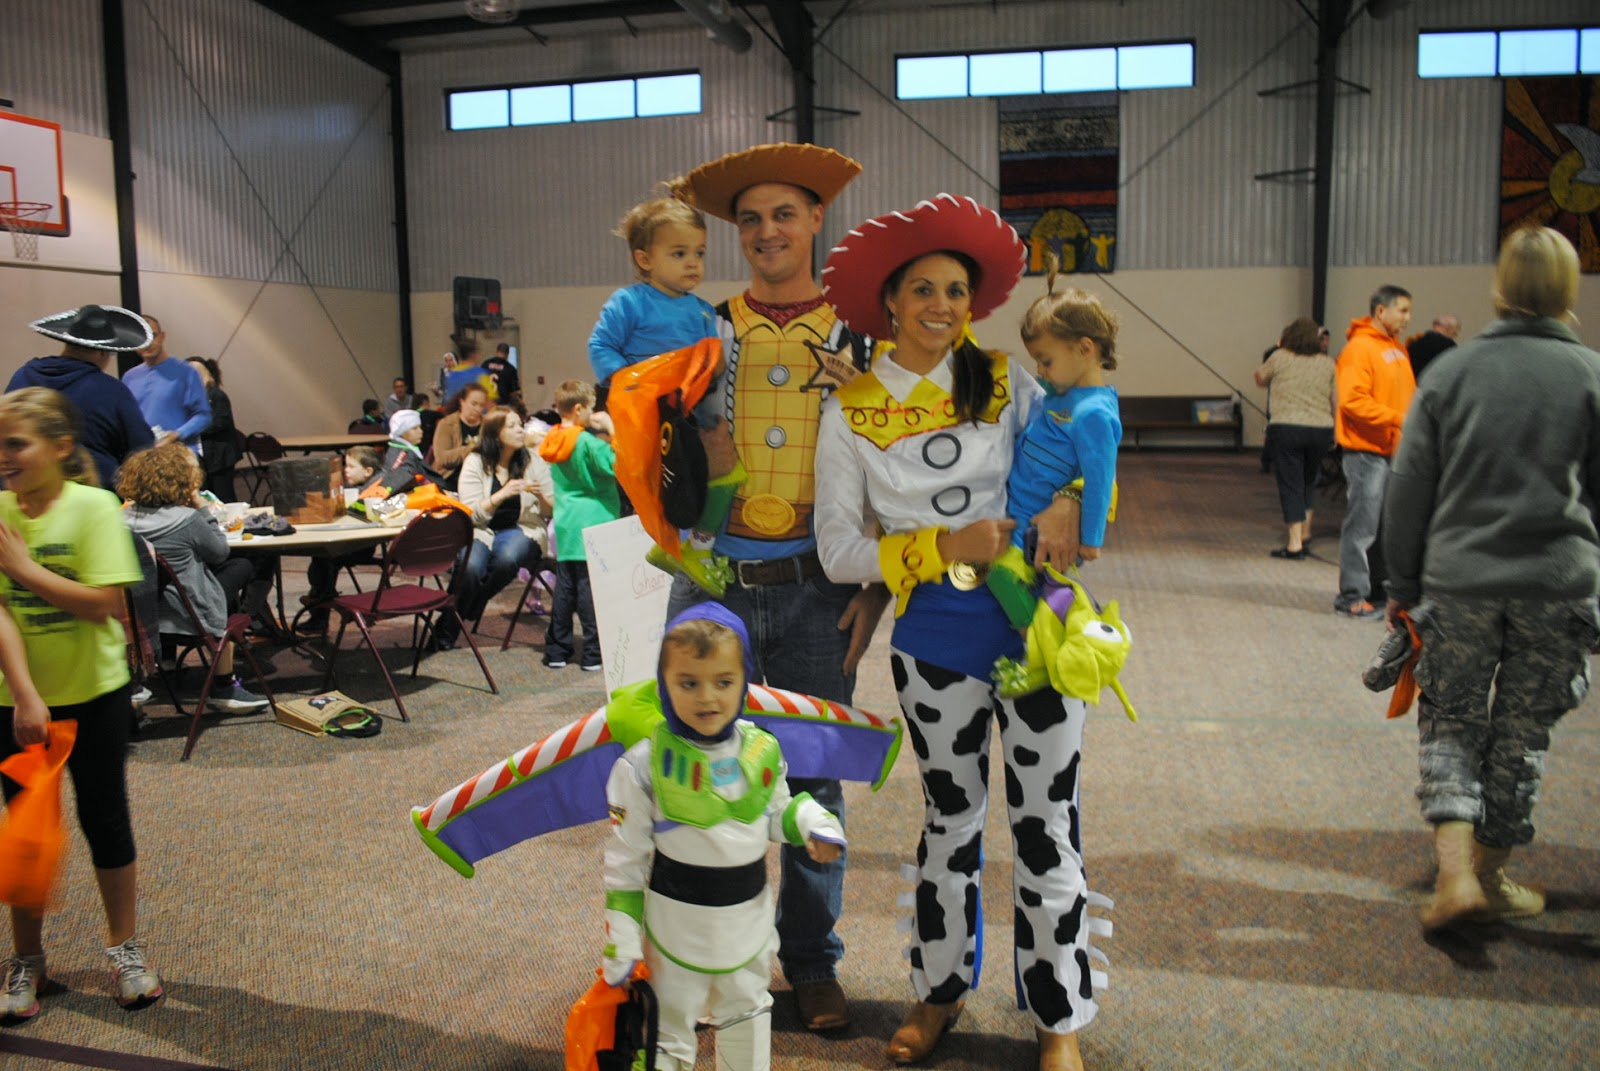 The Acree Family Happy Halloween Toy Story Style